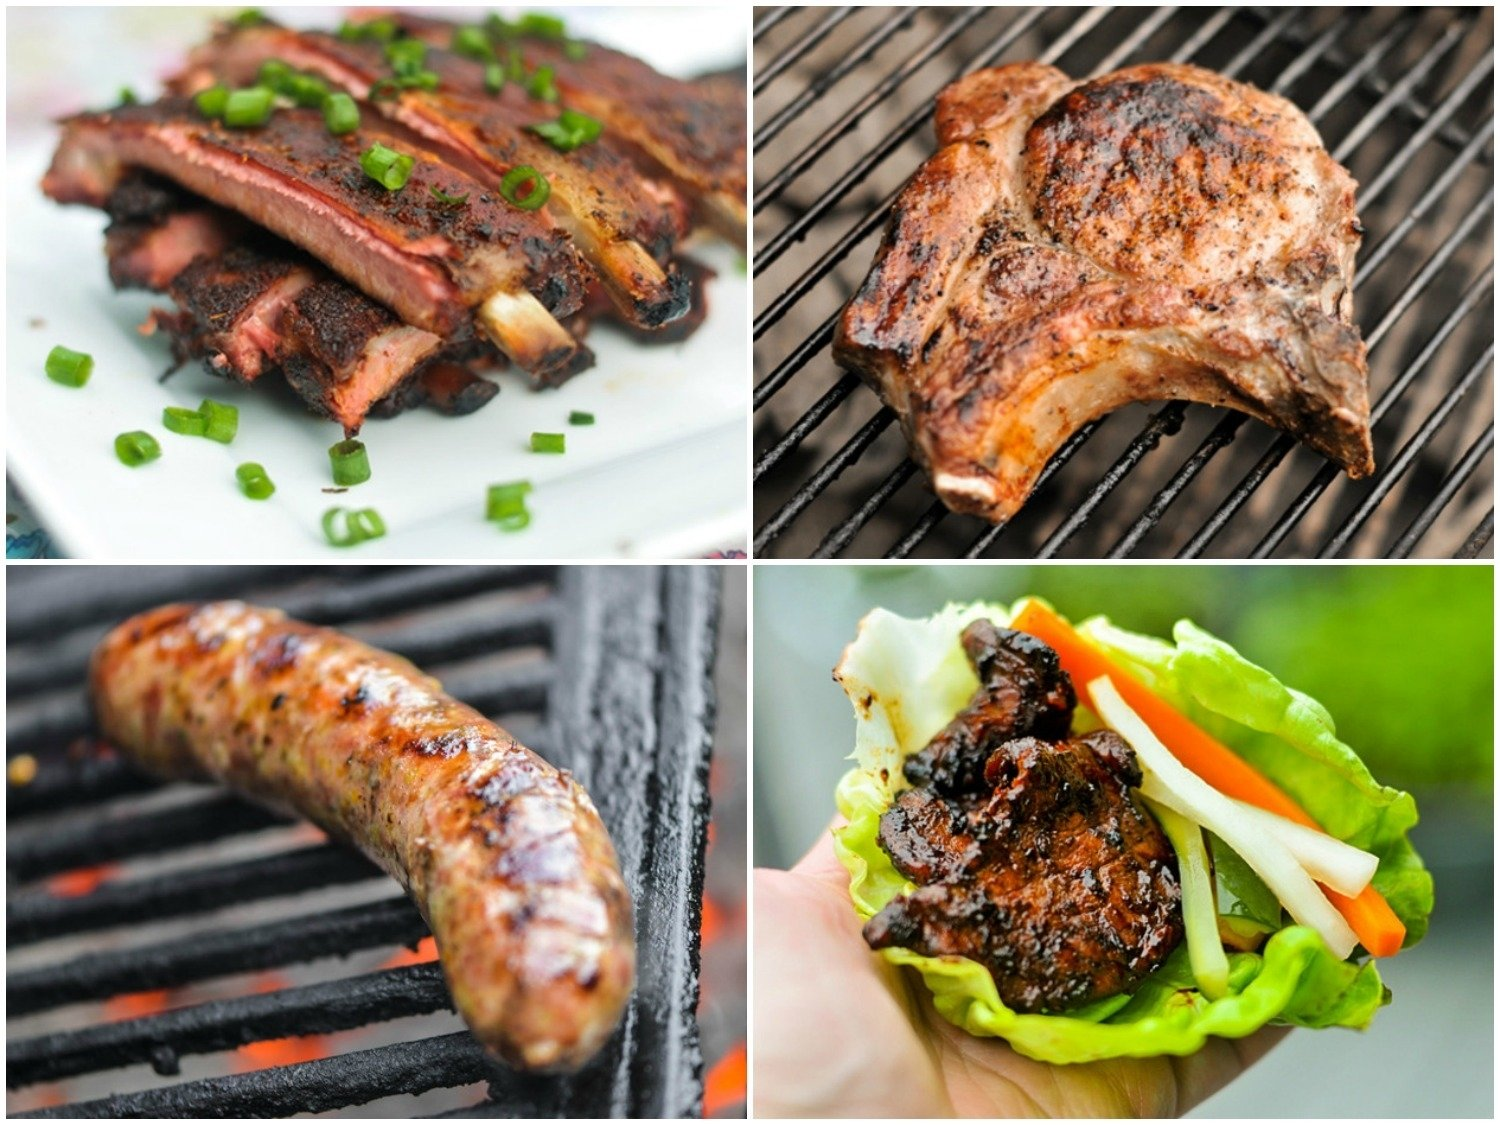 10 Awesome Memorial Day Bbq Menu Ideas 17 juicy grilled and smoked pork recipes for your memorial day table